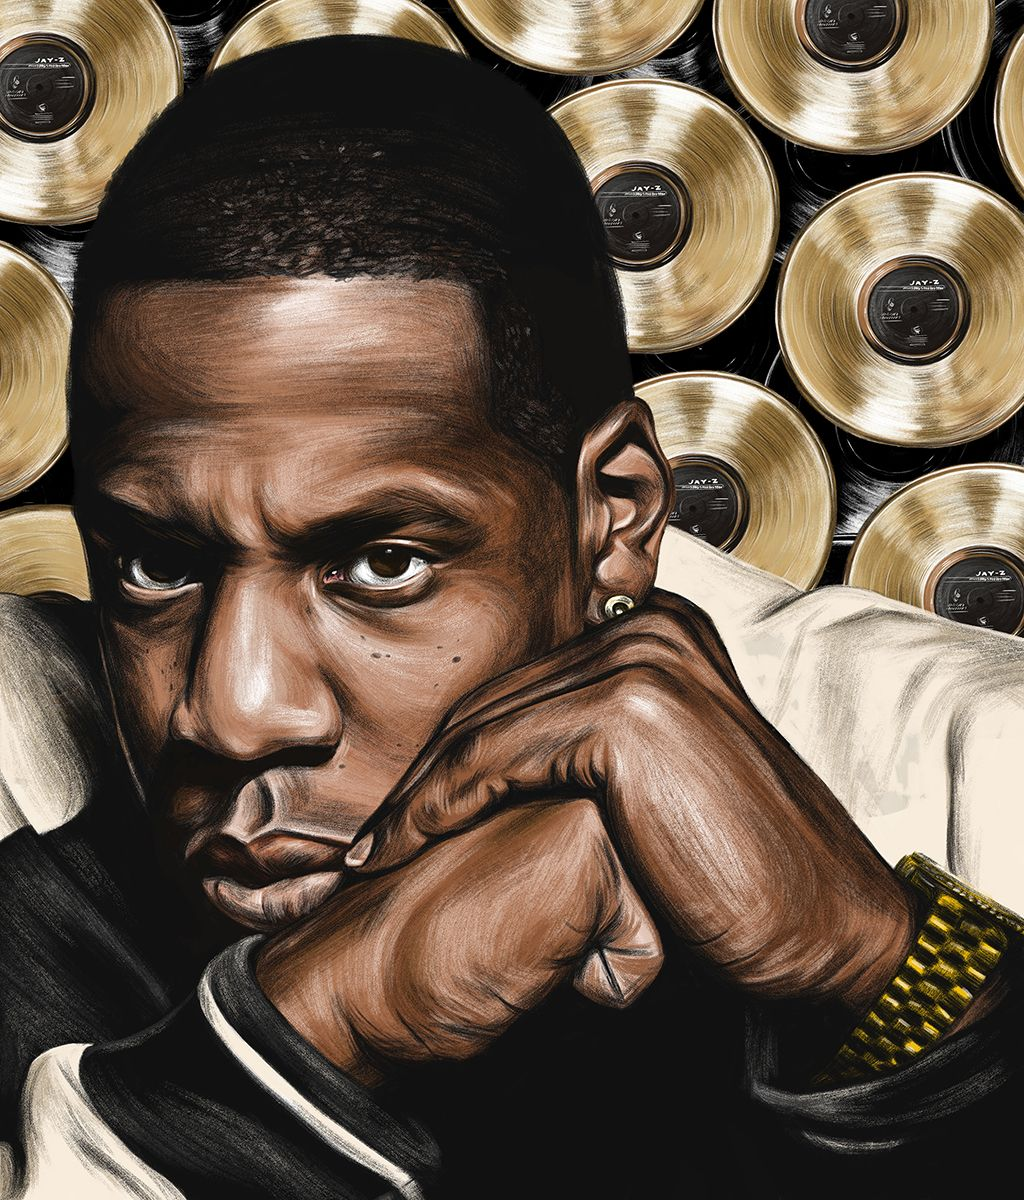 All 274 jay z songs ranked from worst to best malvernweather Image collections